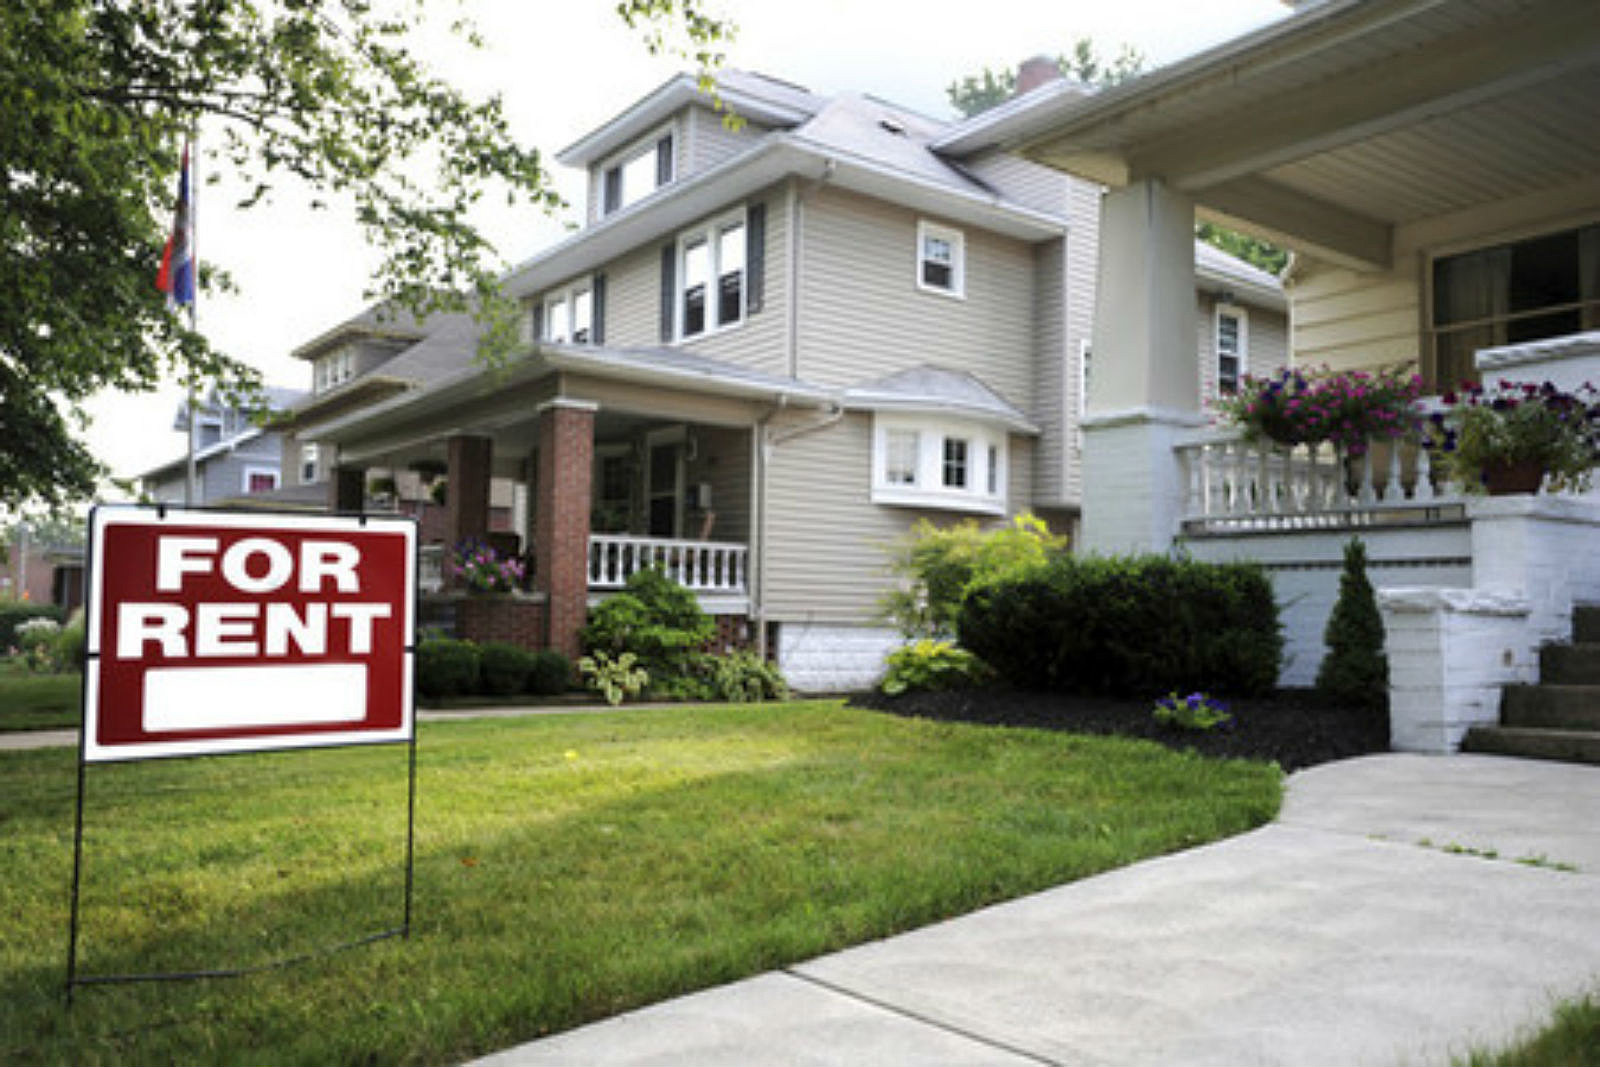 renting vs buying Vermont renting vs buying a home in vermont: monthly rent in vermont: $1,500 monthly mortgage in vermont: $1,226 one of the best states for first-time homebuyers, vermont's homes have.